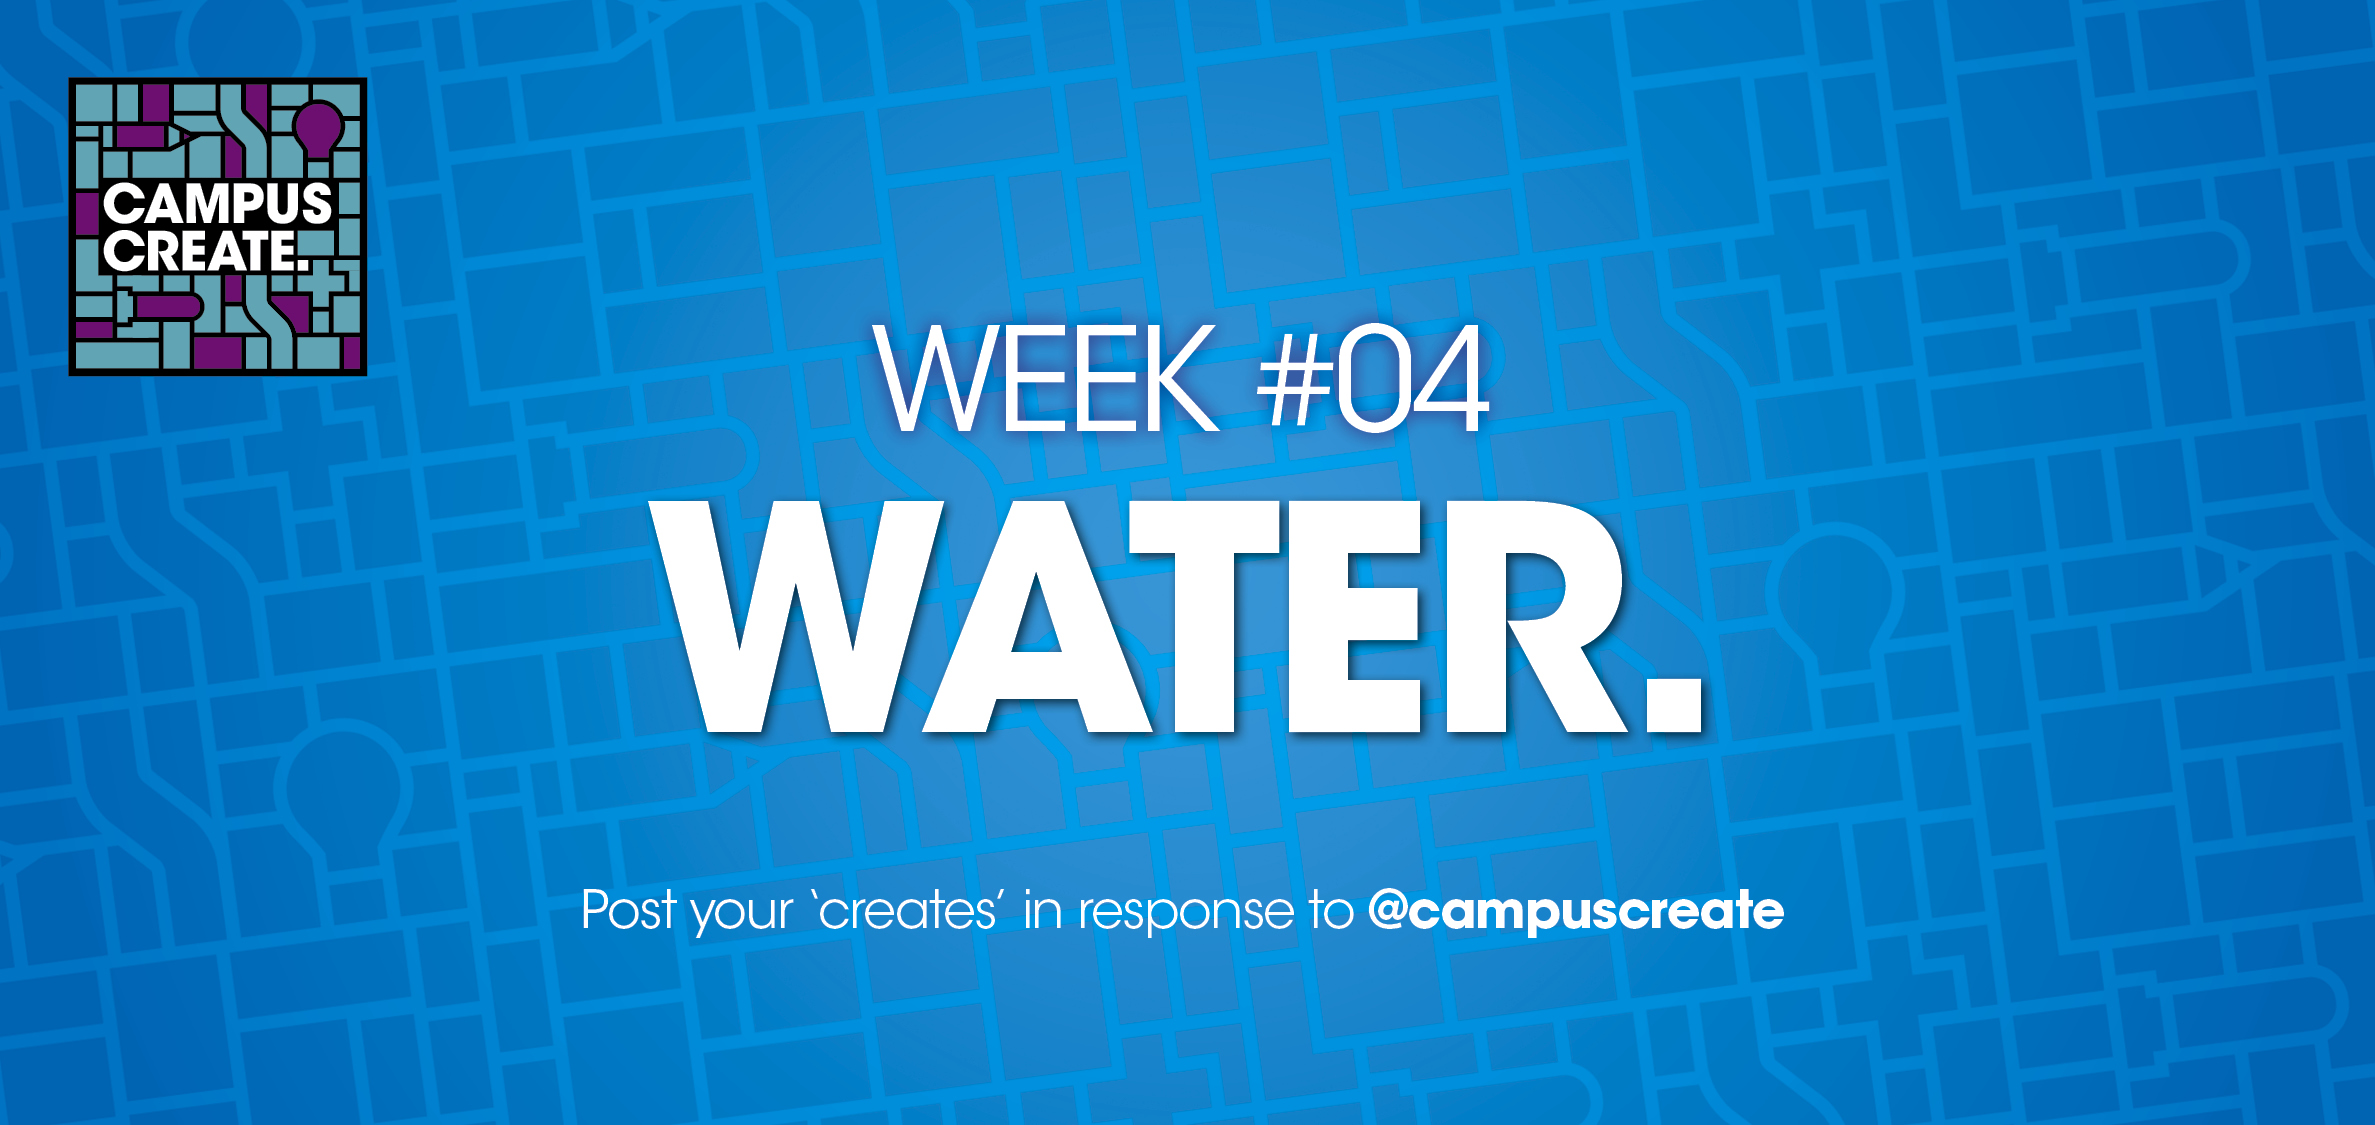 Campus Create Web Banner Water